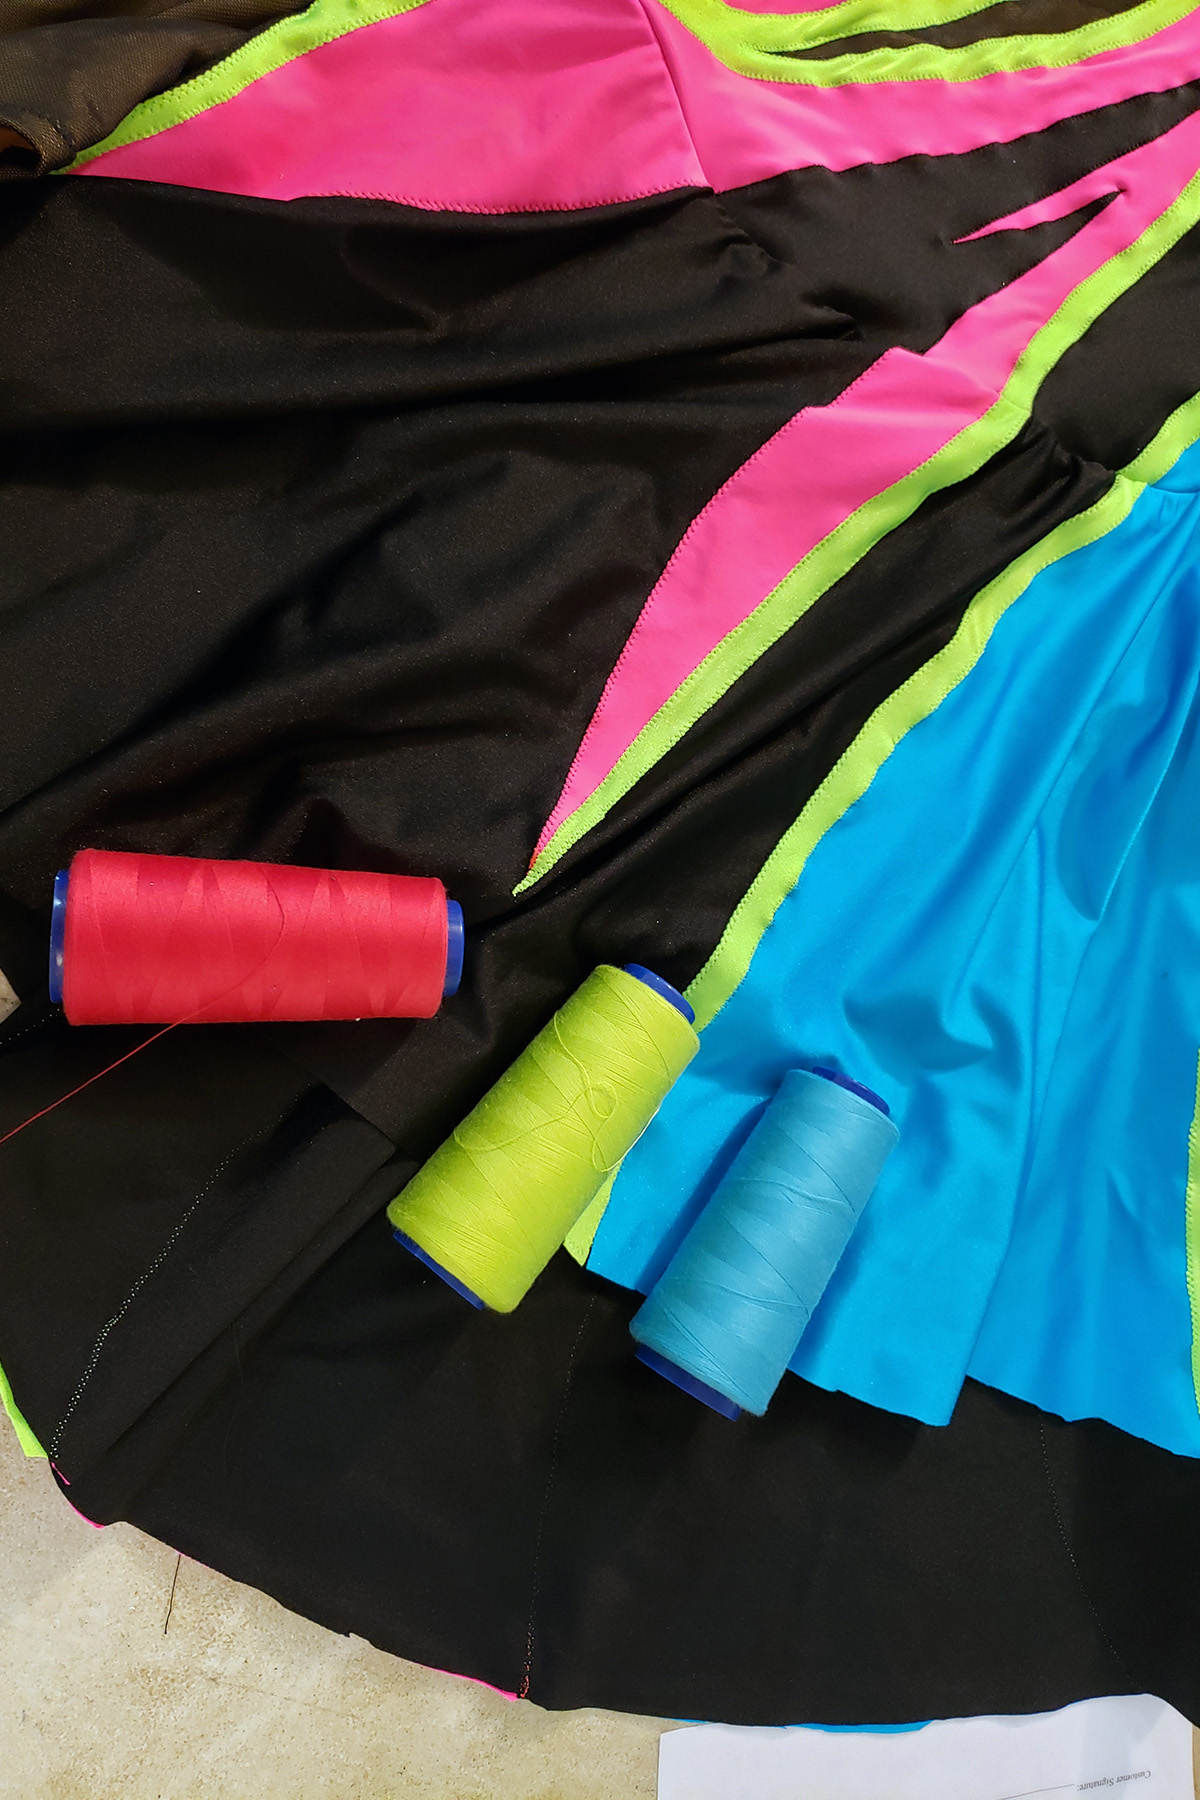 3 large serger cones of thread in pink, lime green, and sky blue are resting on the skirt section of this skating dress.